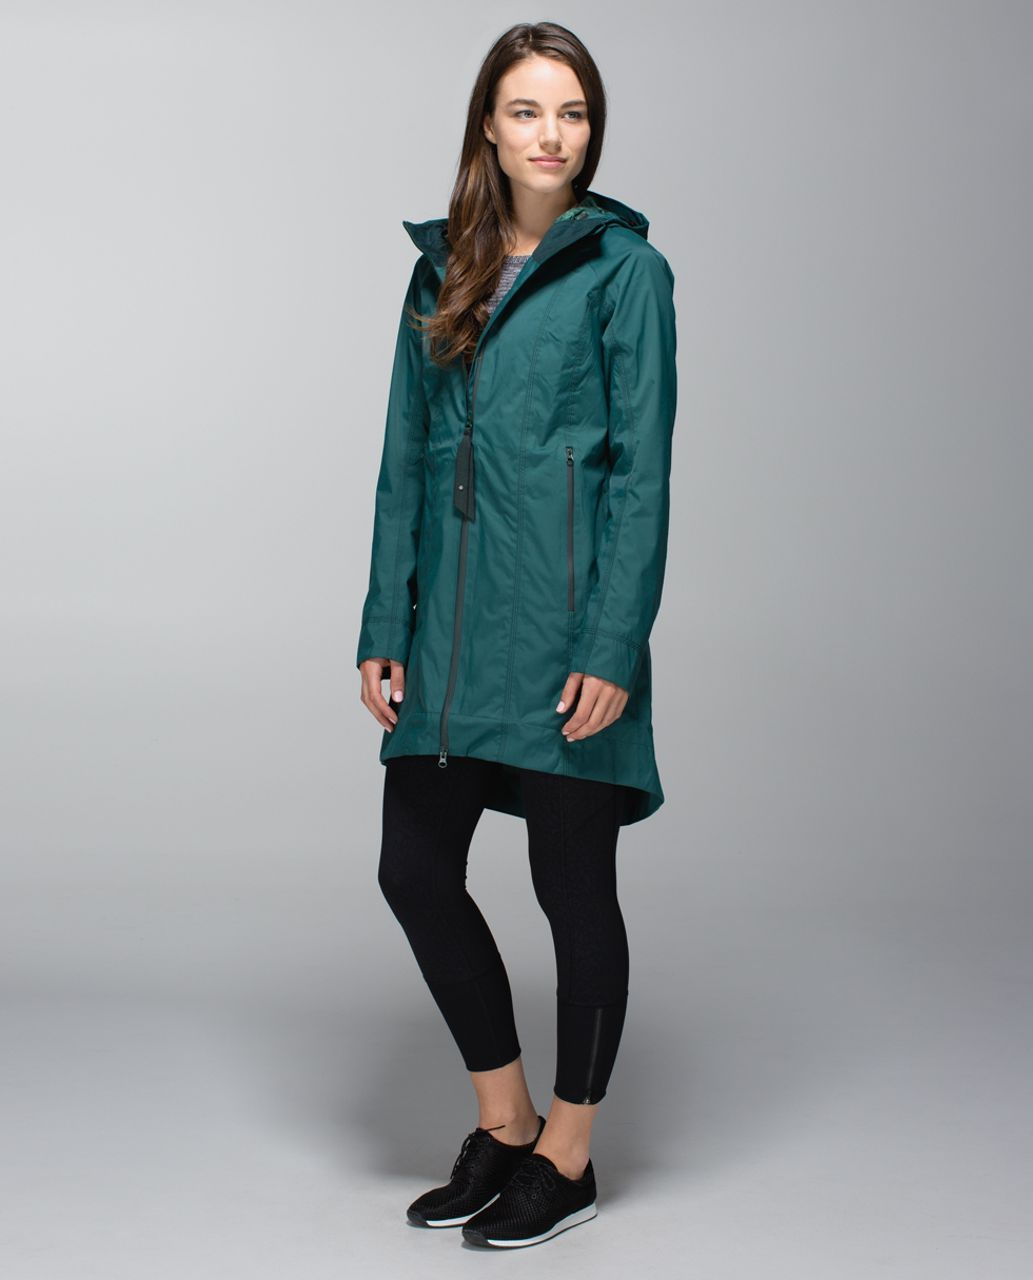 eb07b1d8 Lululemon Right As Rain Jacket - Fuel Green | Outerwear | Lululemon ...